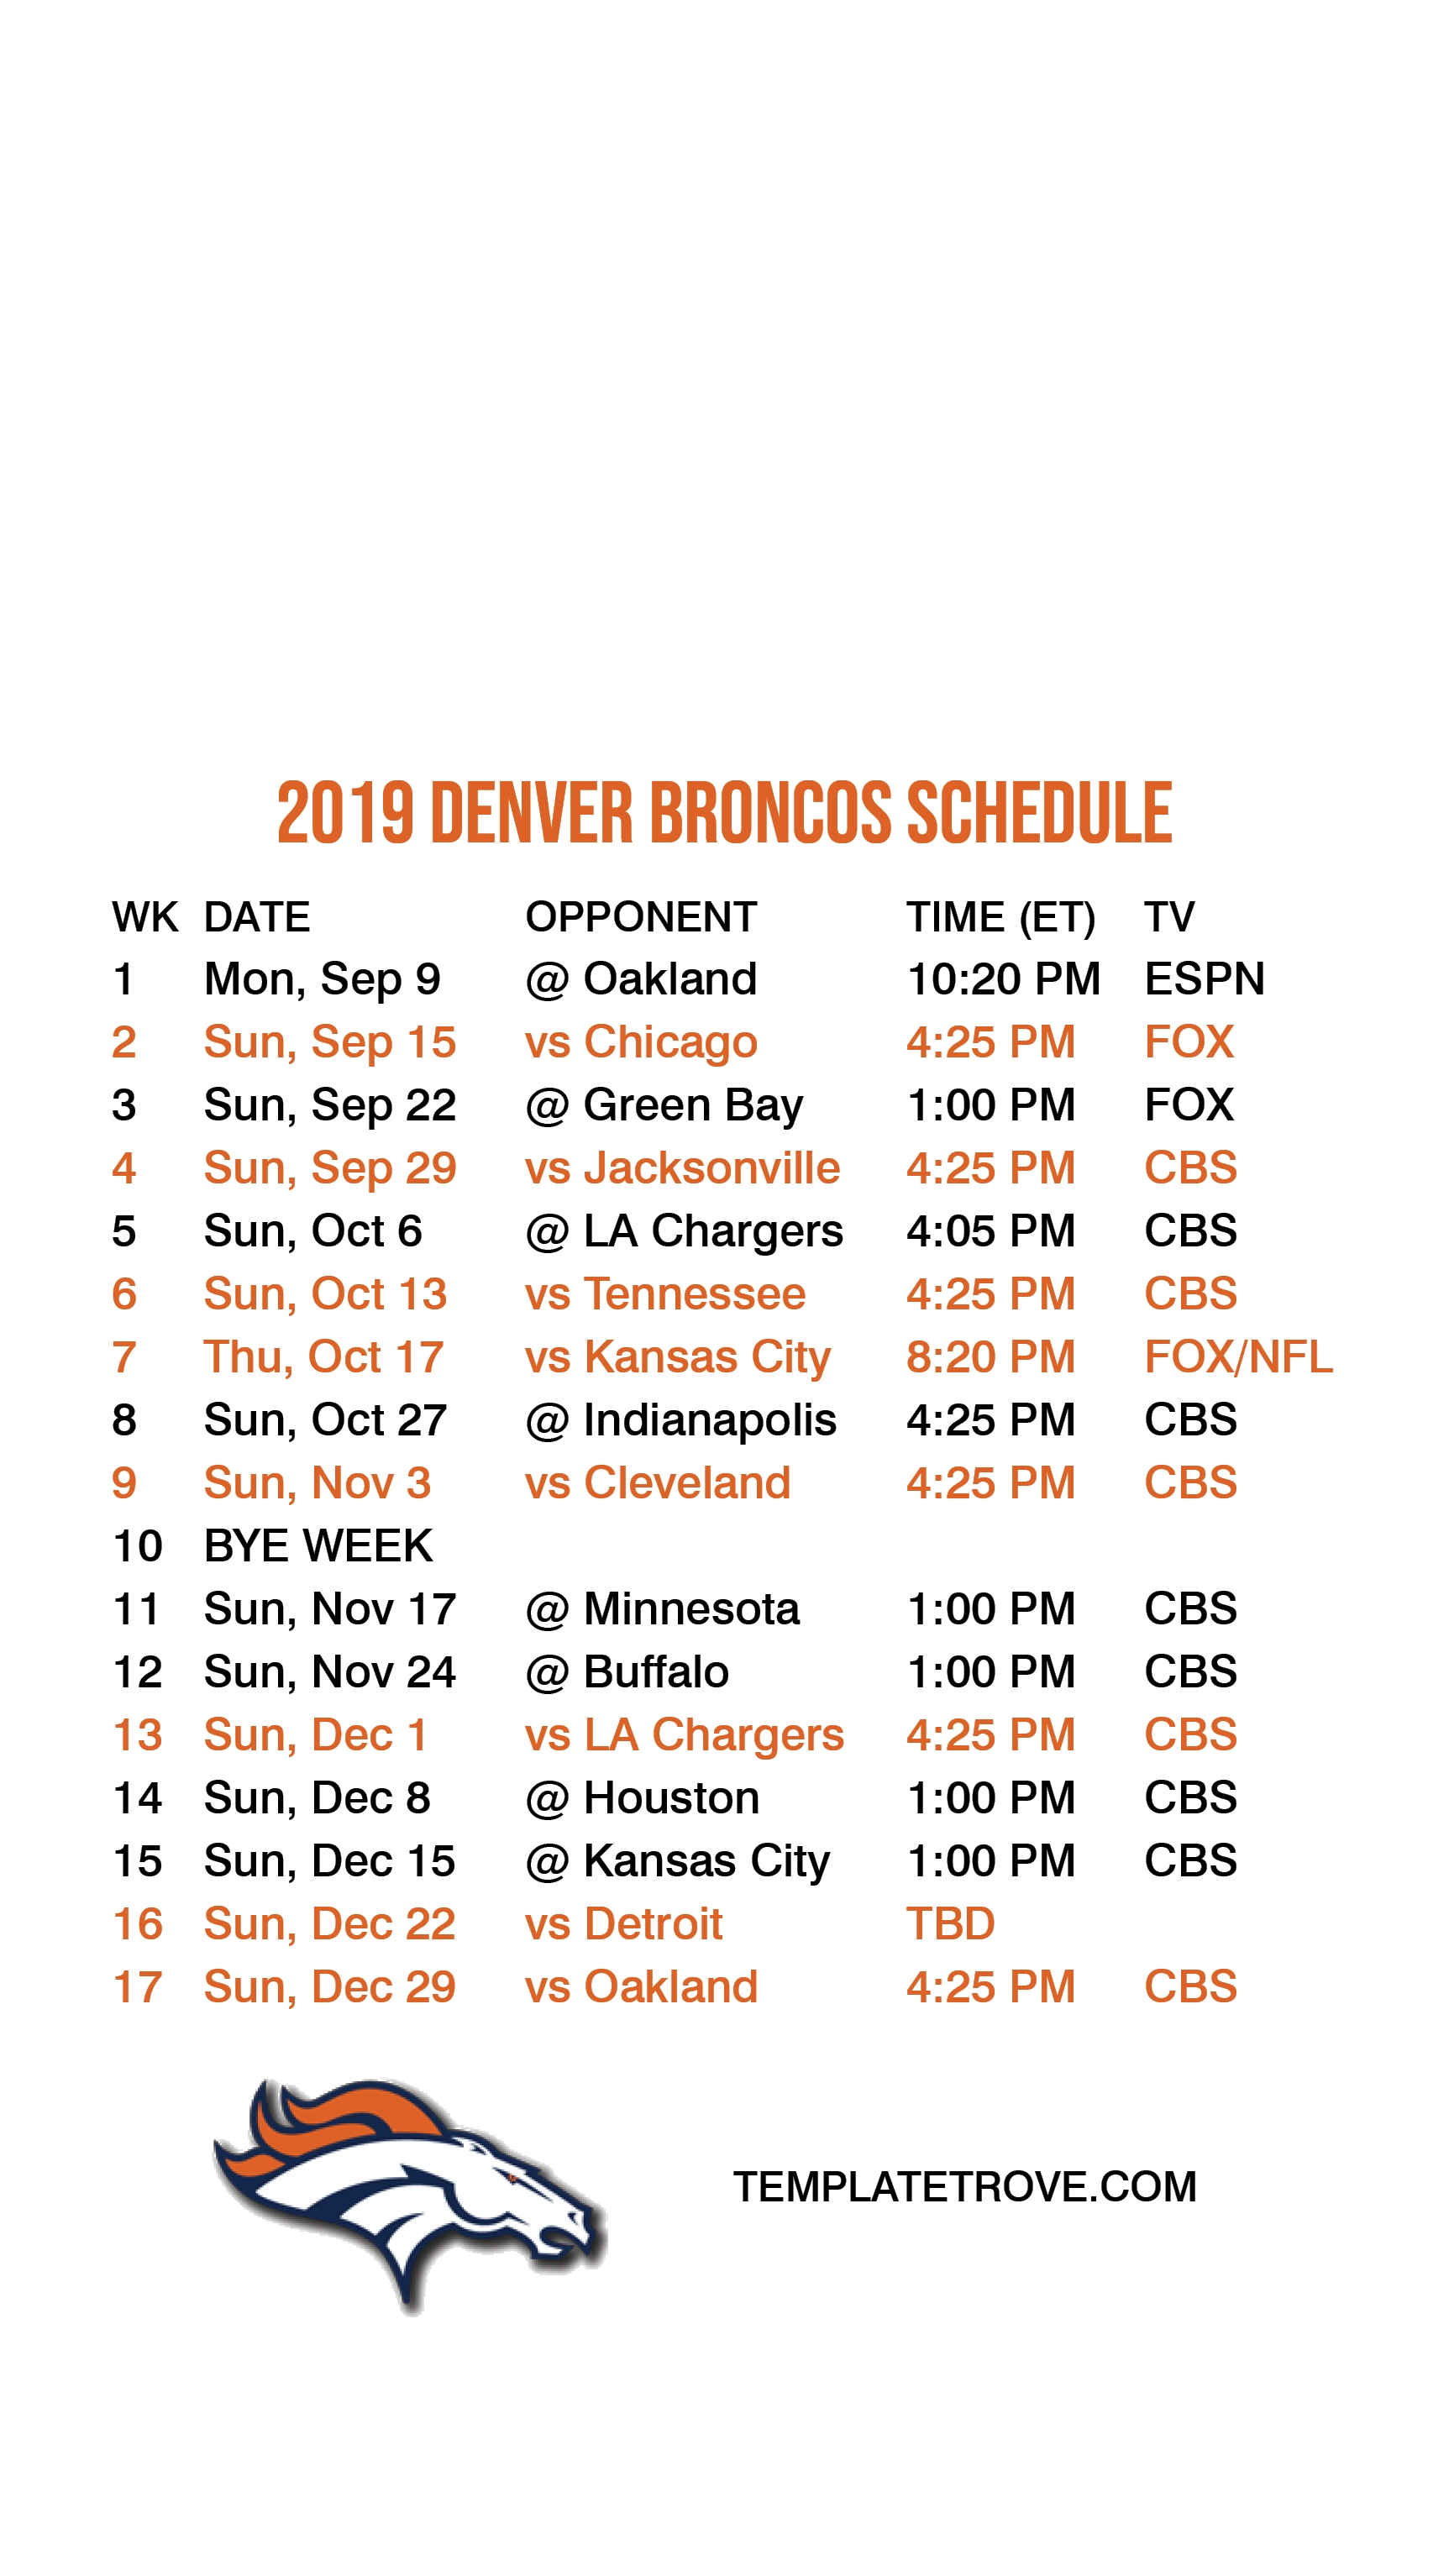 2019-2020 Denver Broncos Lock Screen Schedule For Iphone 6-7 regarding Printable Nfl Schedule For 2019 2020